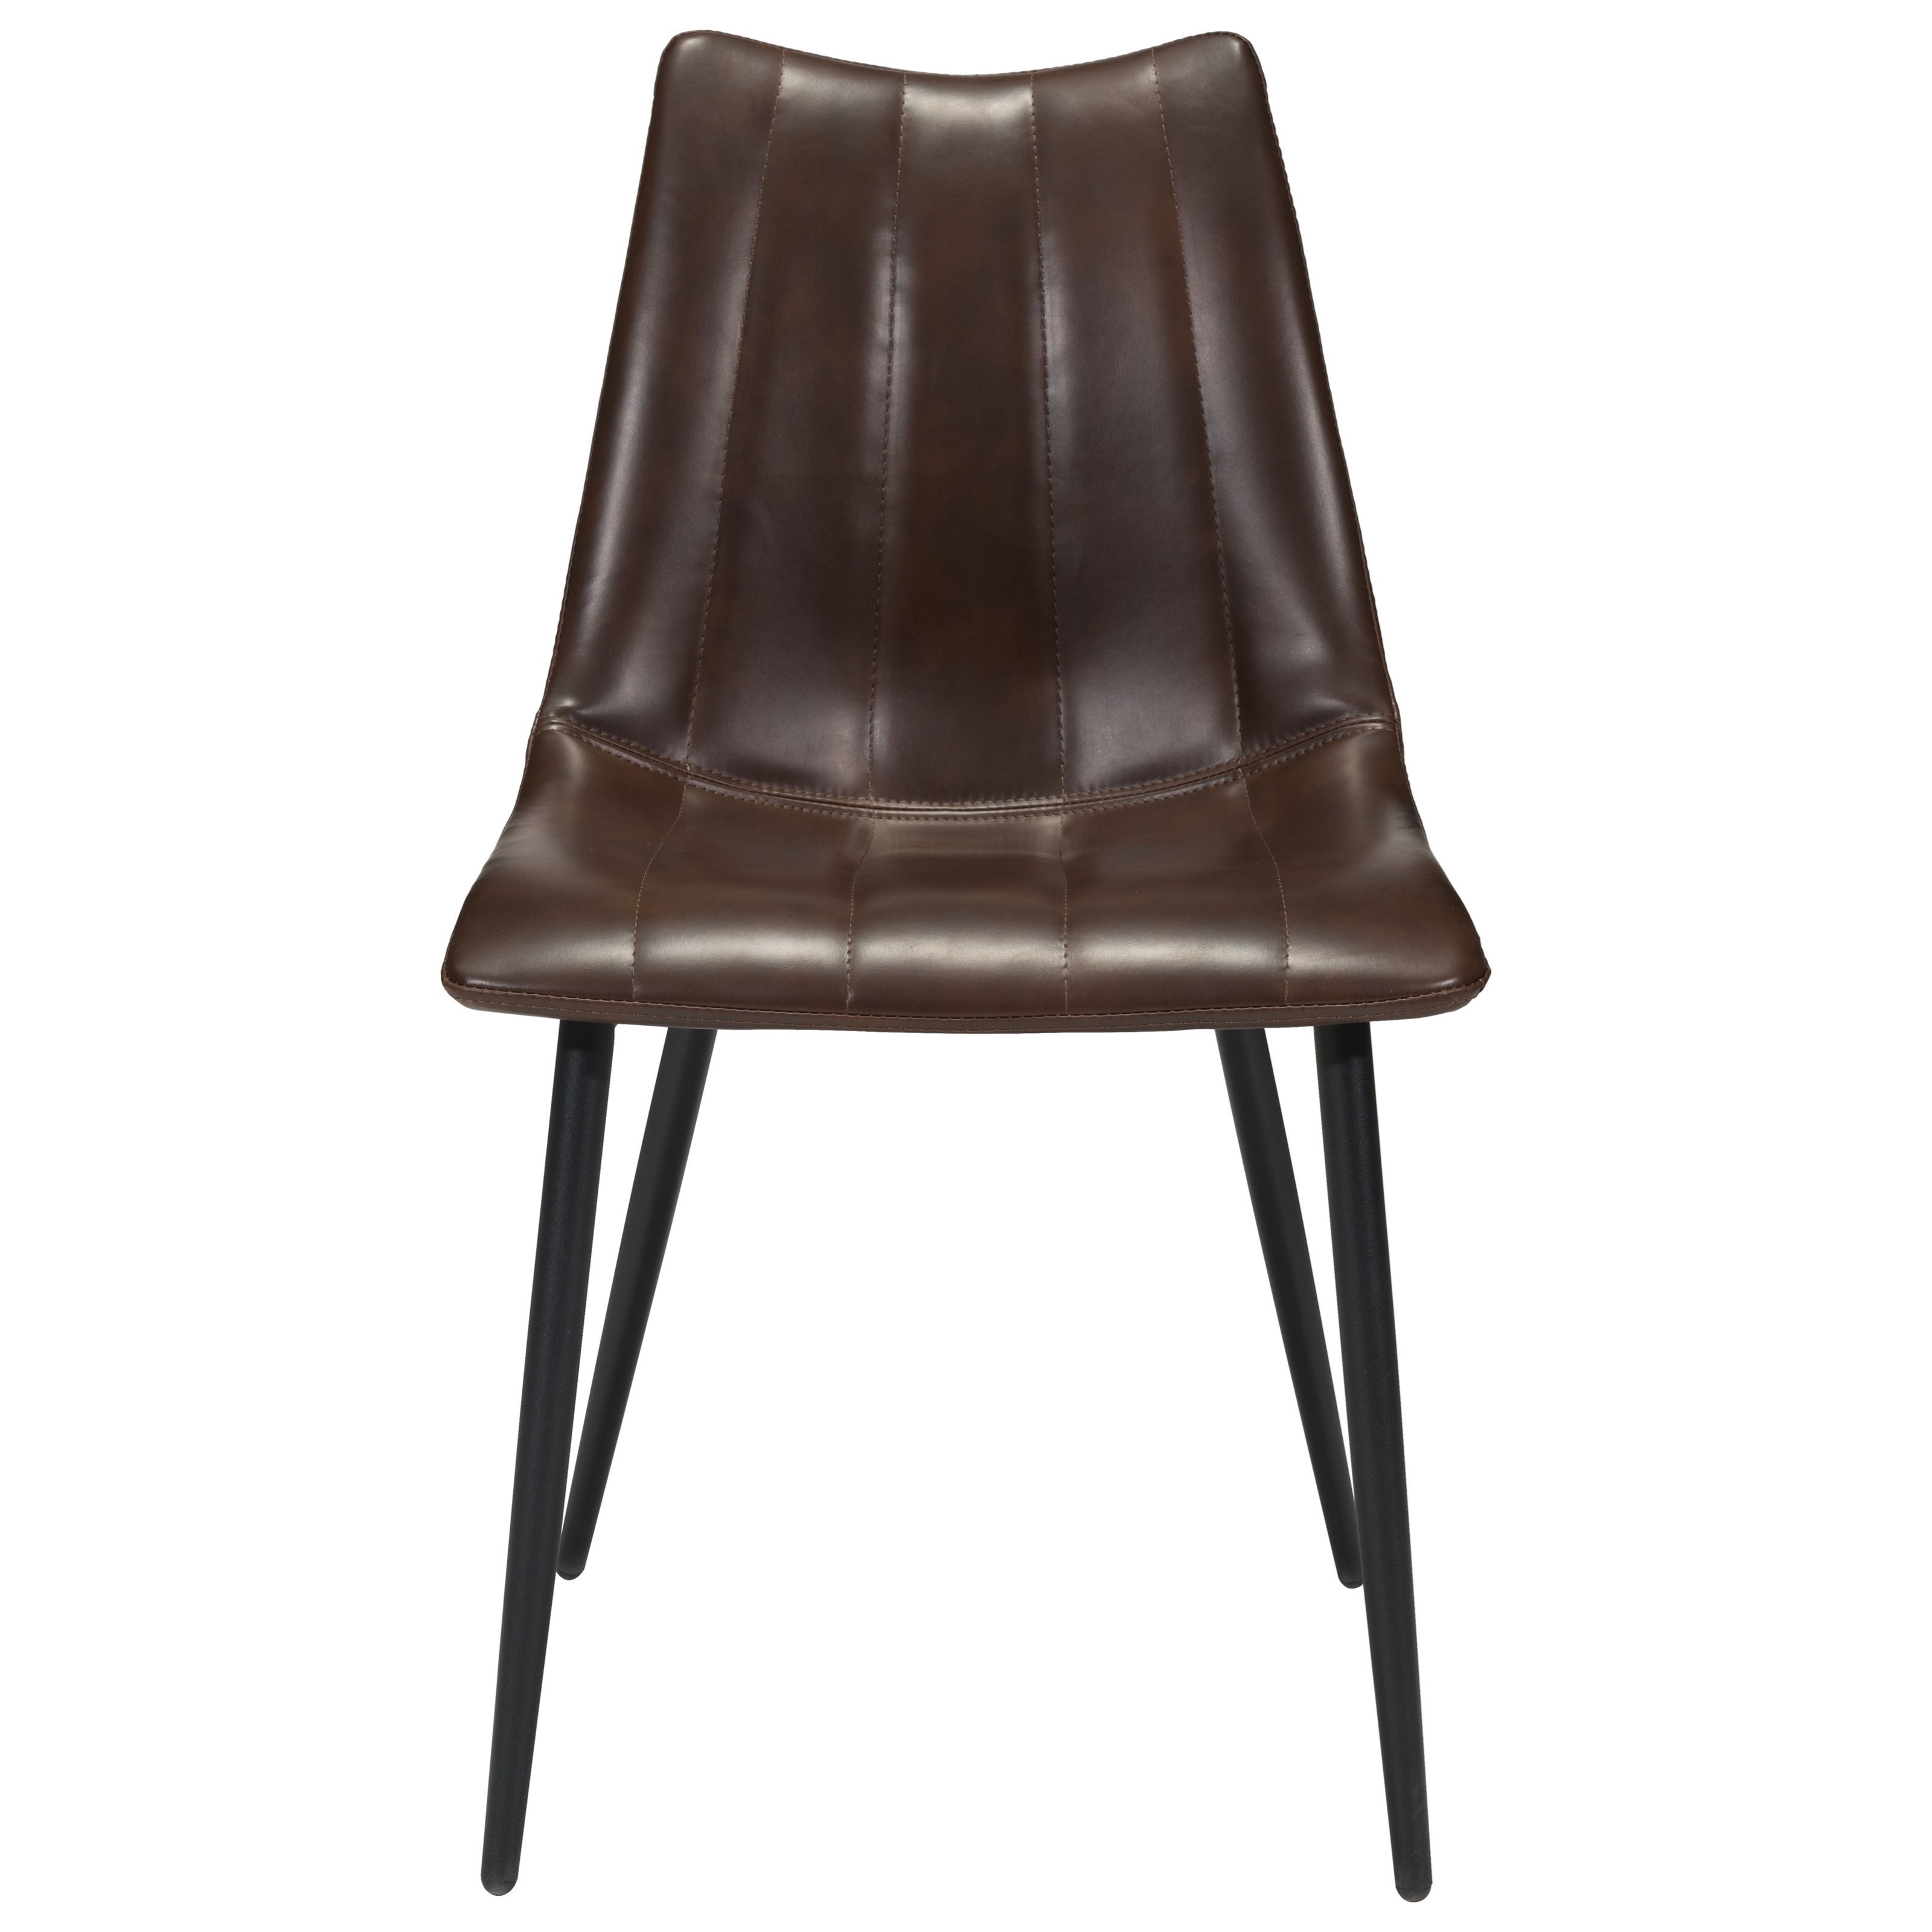 Norwich Dining Chair by Zuo at Nassau Furniture and Mattress